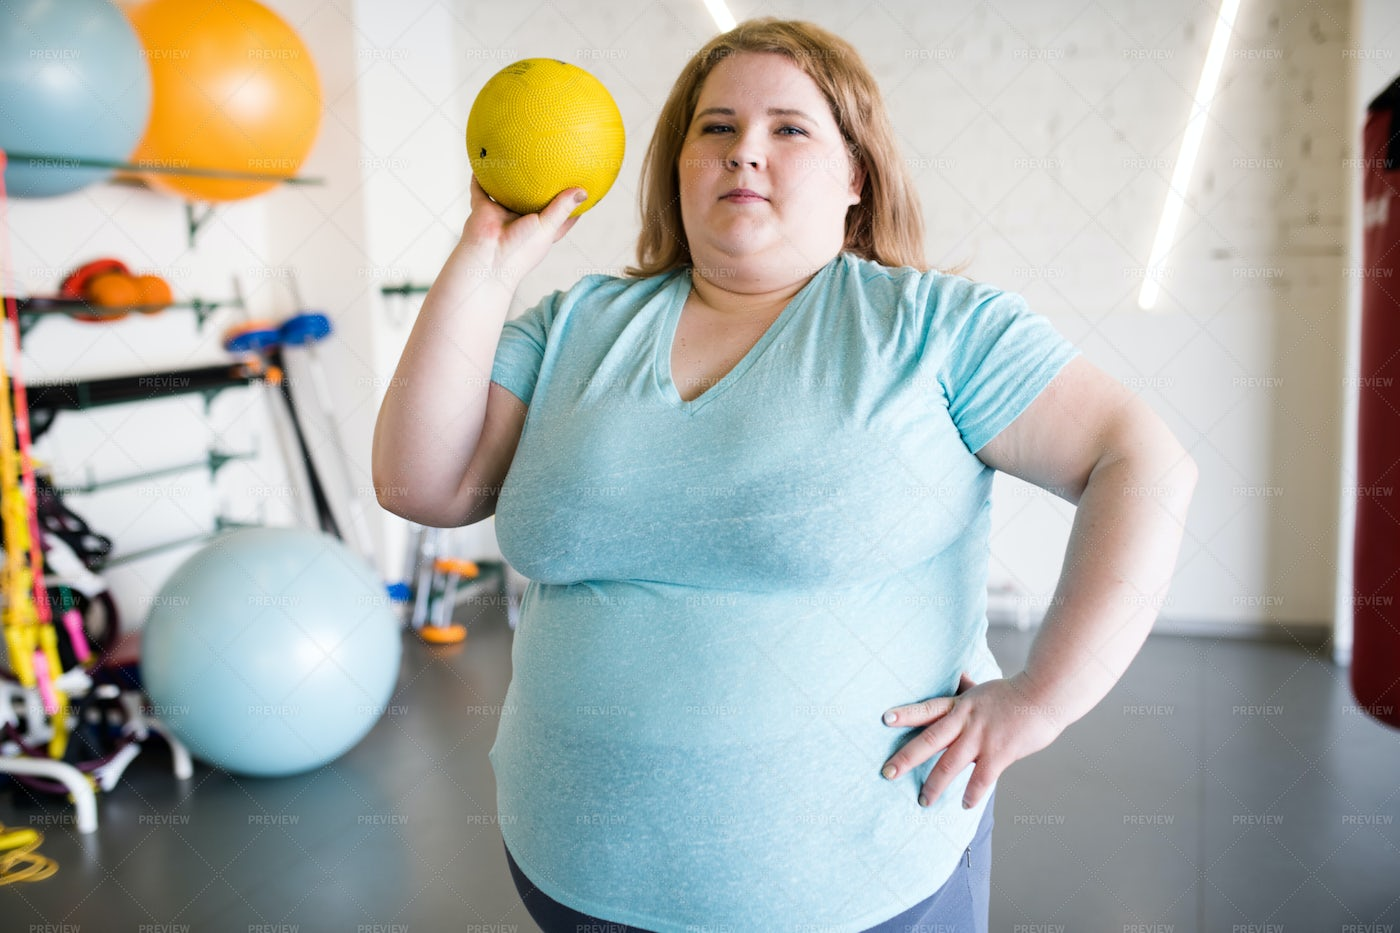 Overweight Woman Training With Ball: Stock Photos